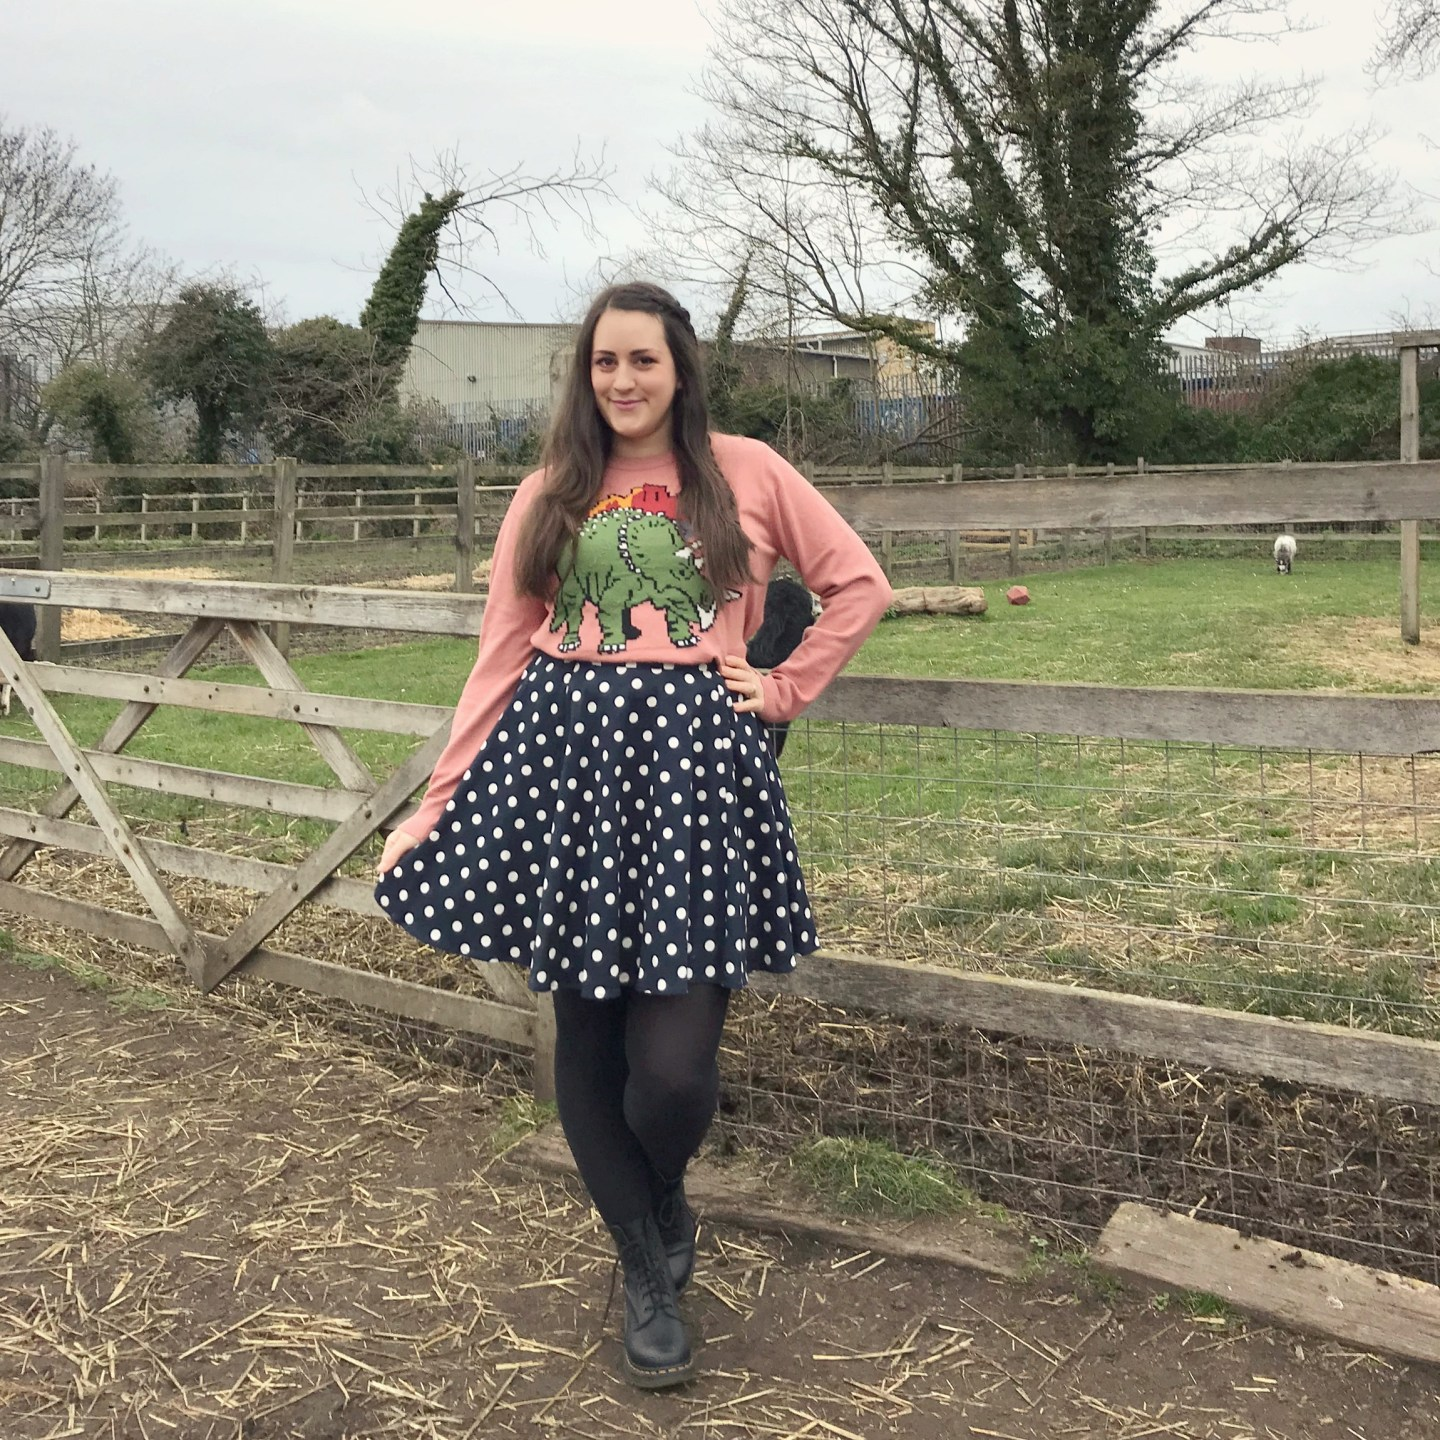 What I've Been Wearing - January 2019 | Joanie Clothing dinosaur jumper and polkadot skirt | Vintage Frills